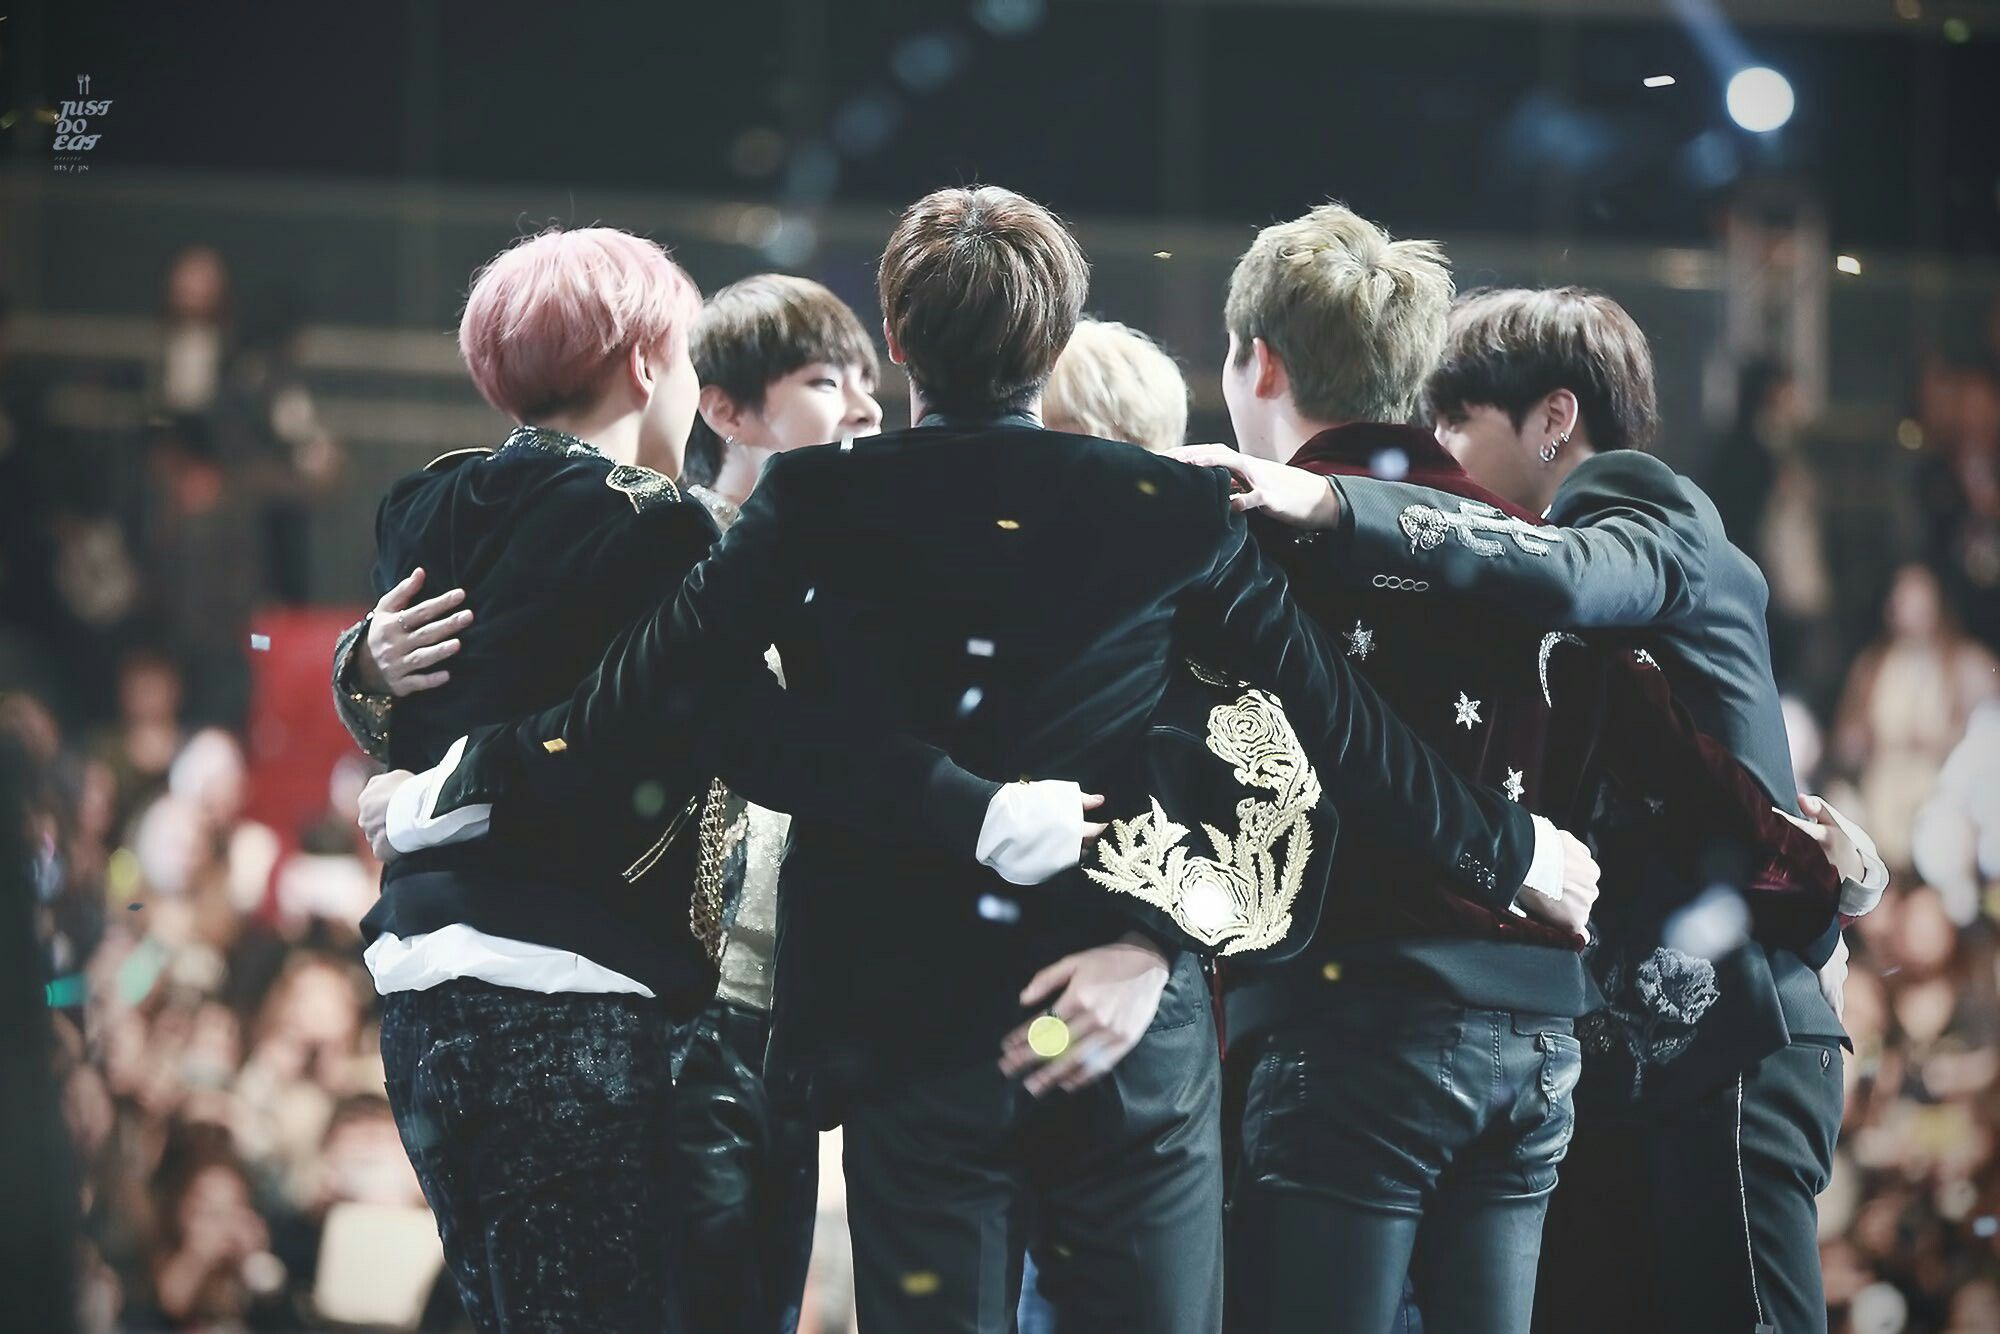 BTS at MAMA 2016 (161202) The group hugs! The tears